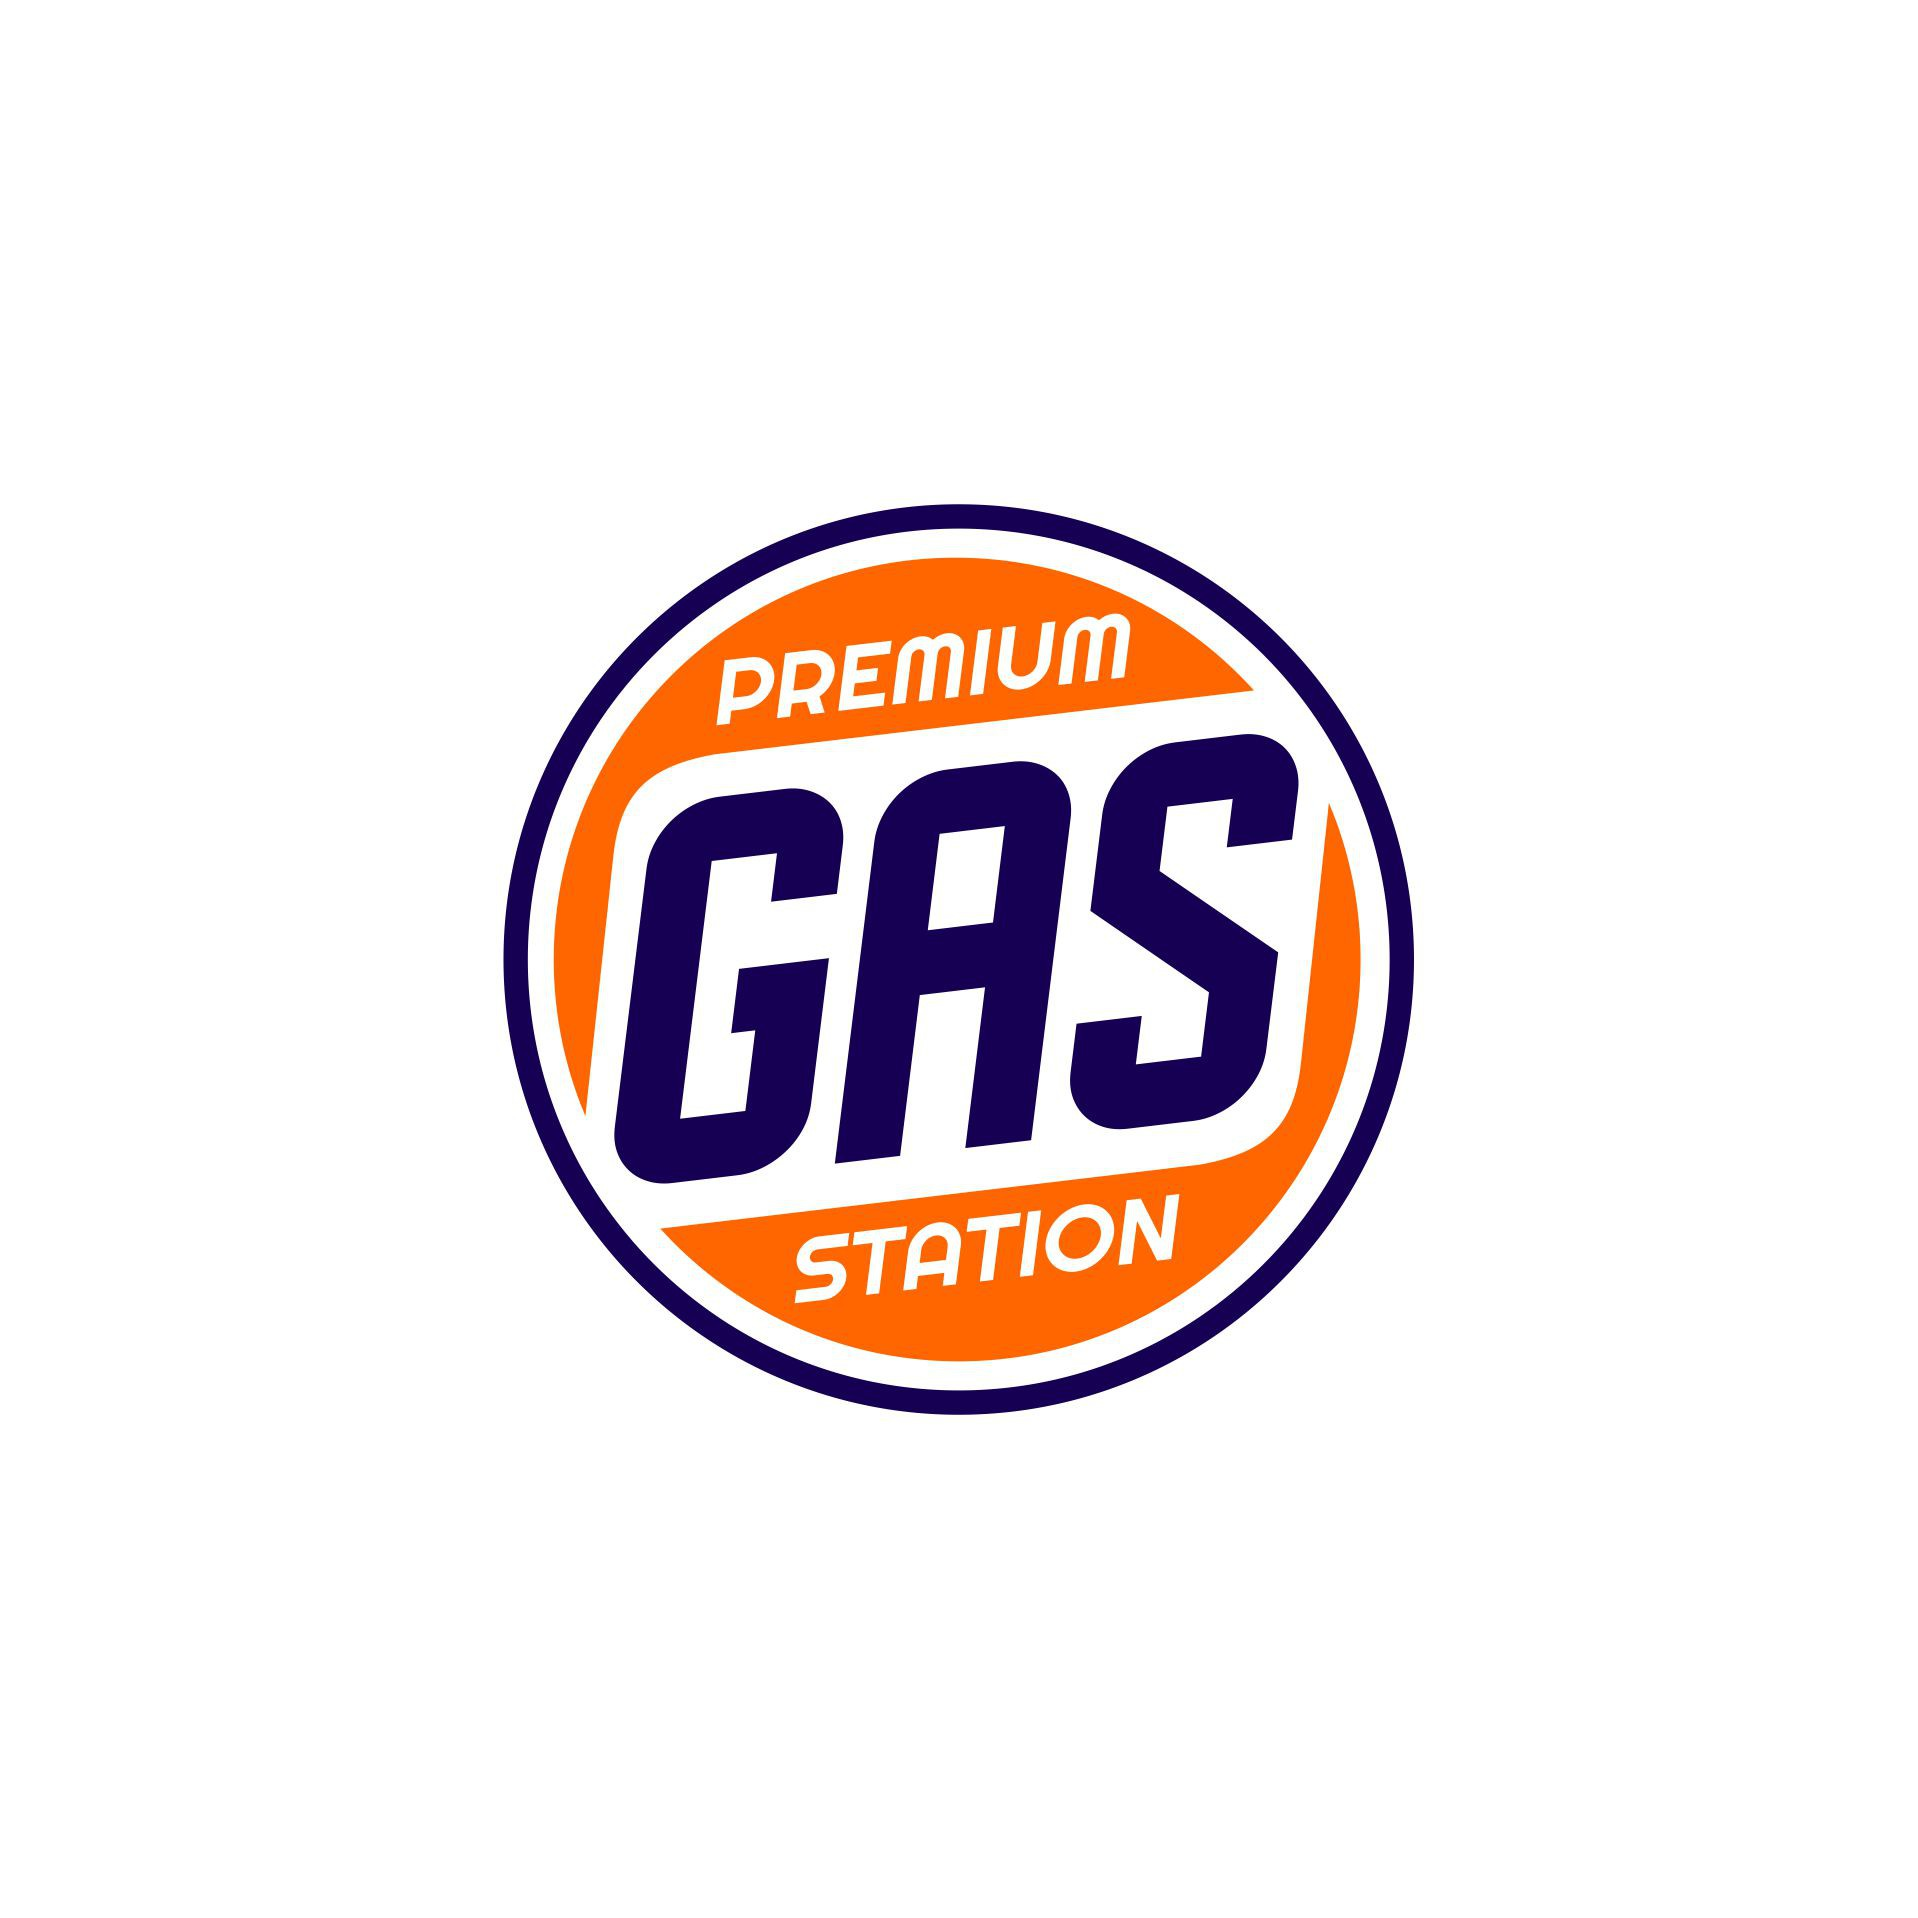 Vintage Gas Pump Lense Graphic Design